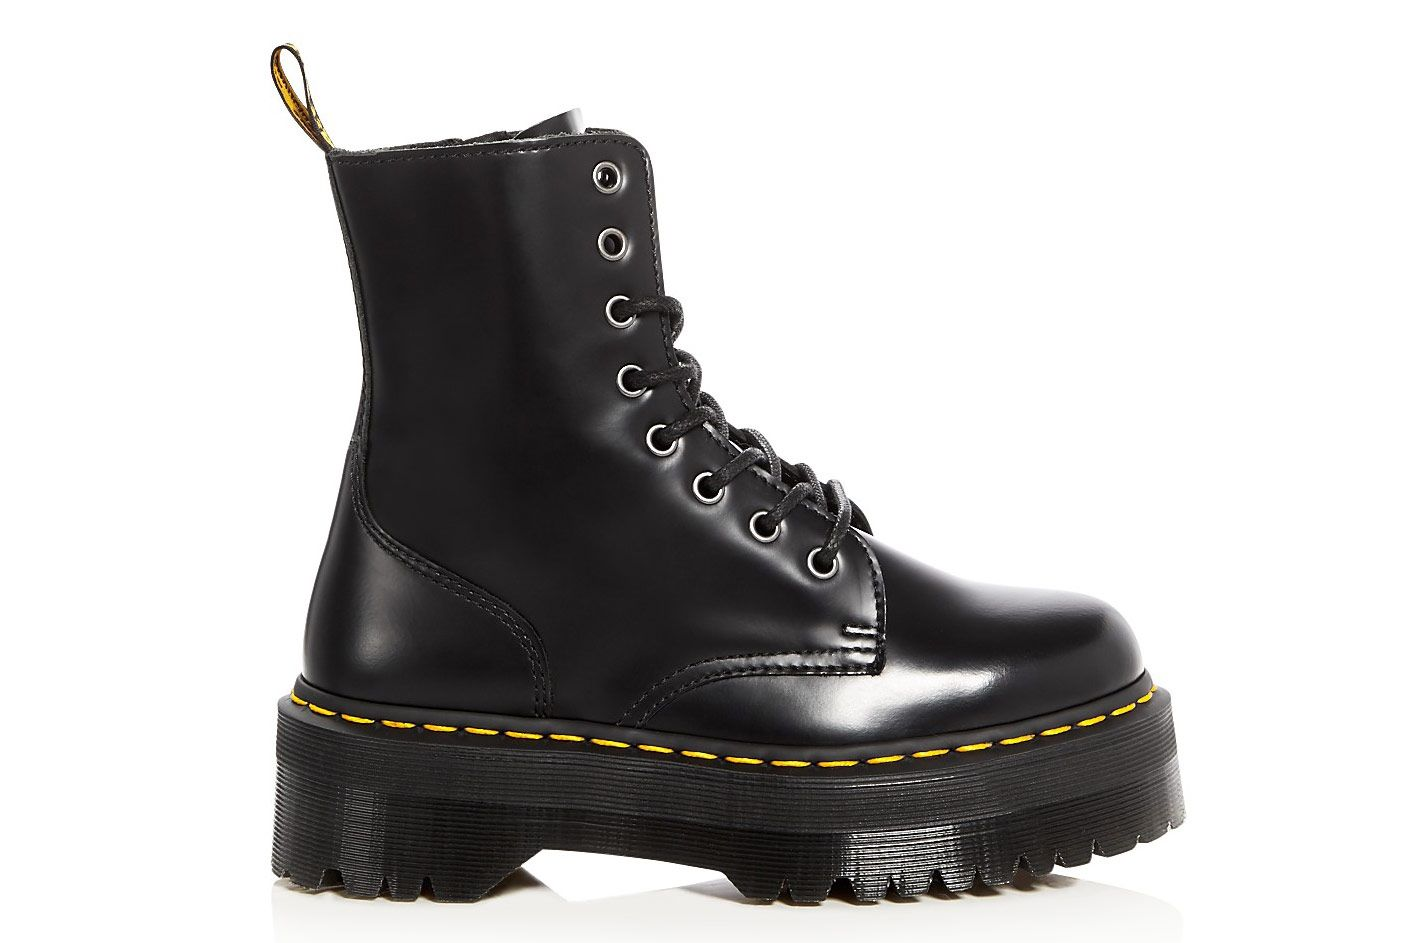 c881d53a5322a The Best Combat Boots for Women